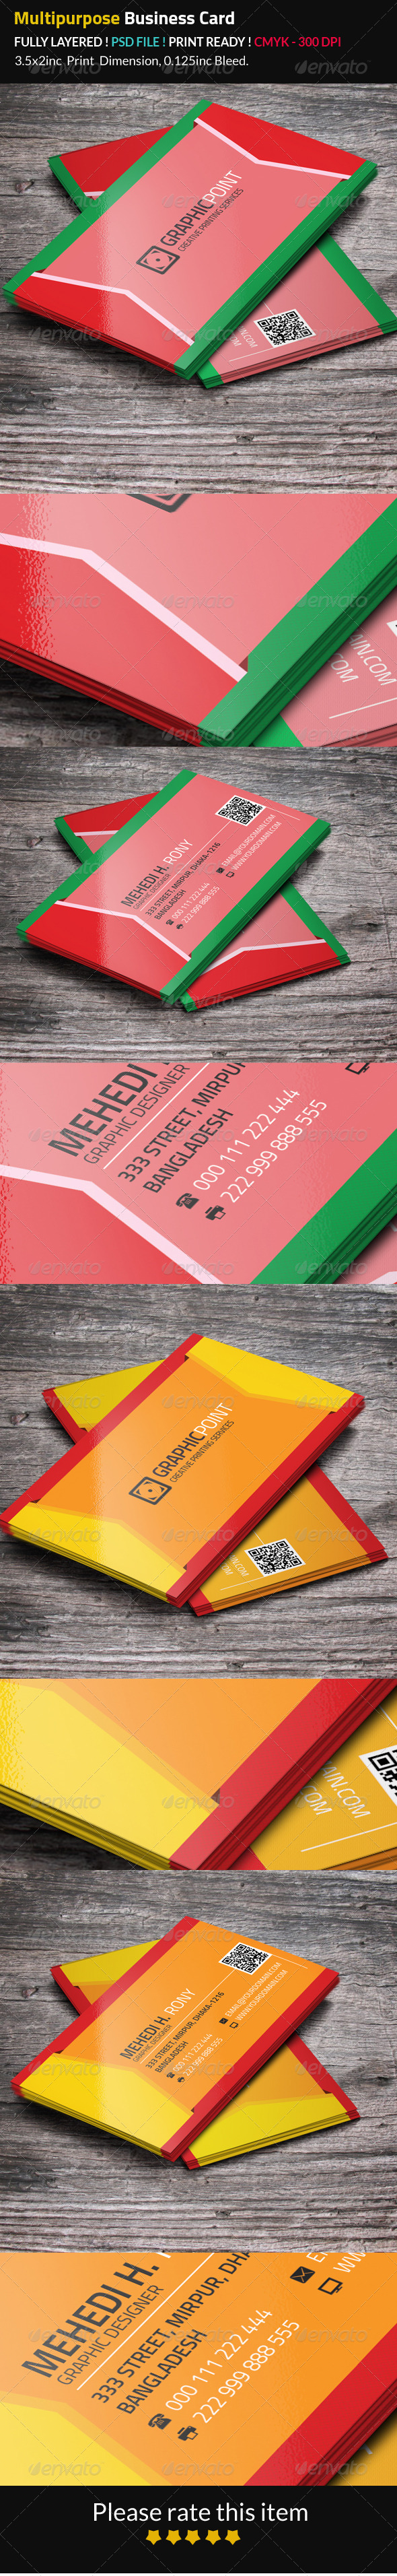 GraphicRiver Multipurpose Business Card 8408566